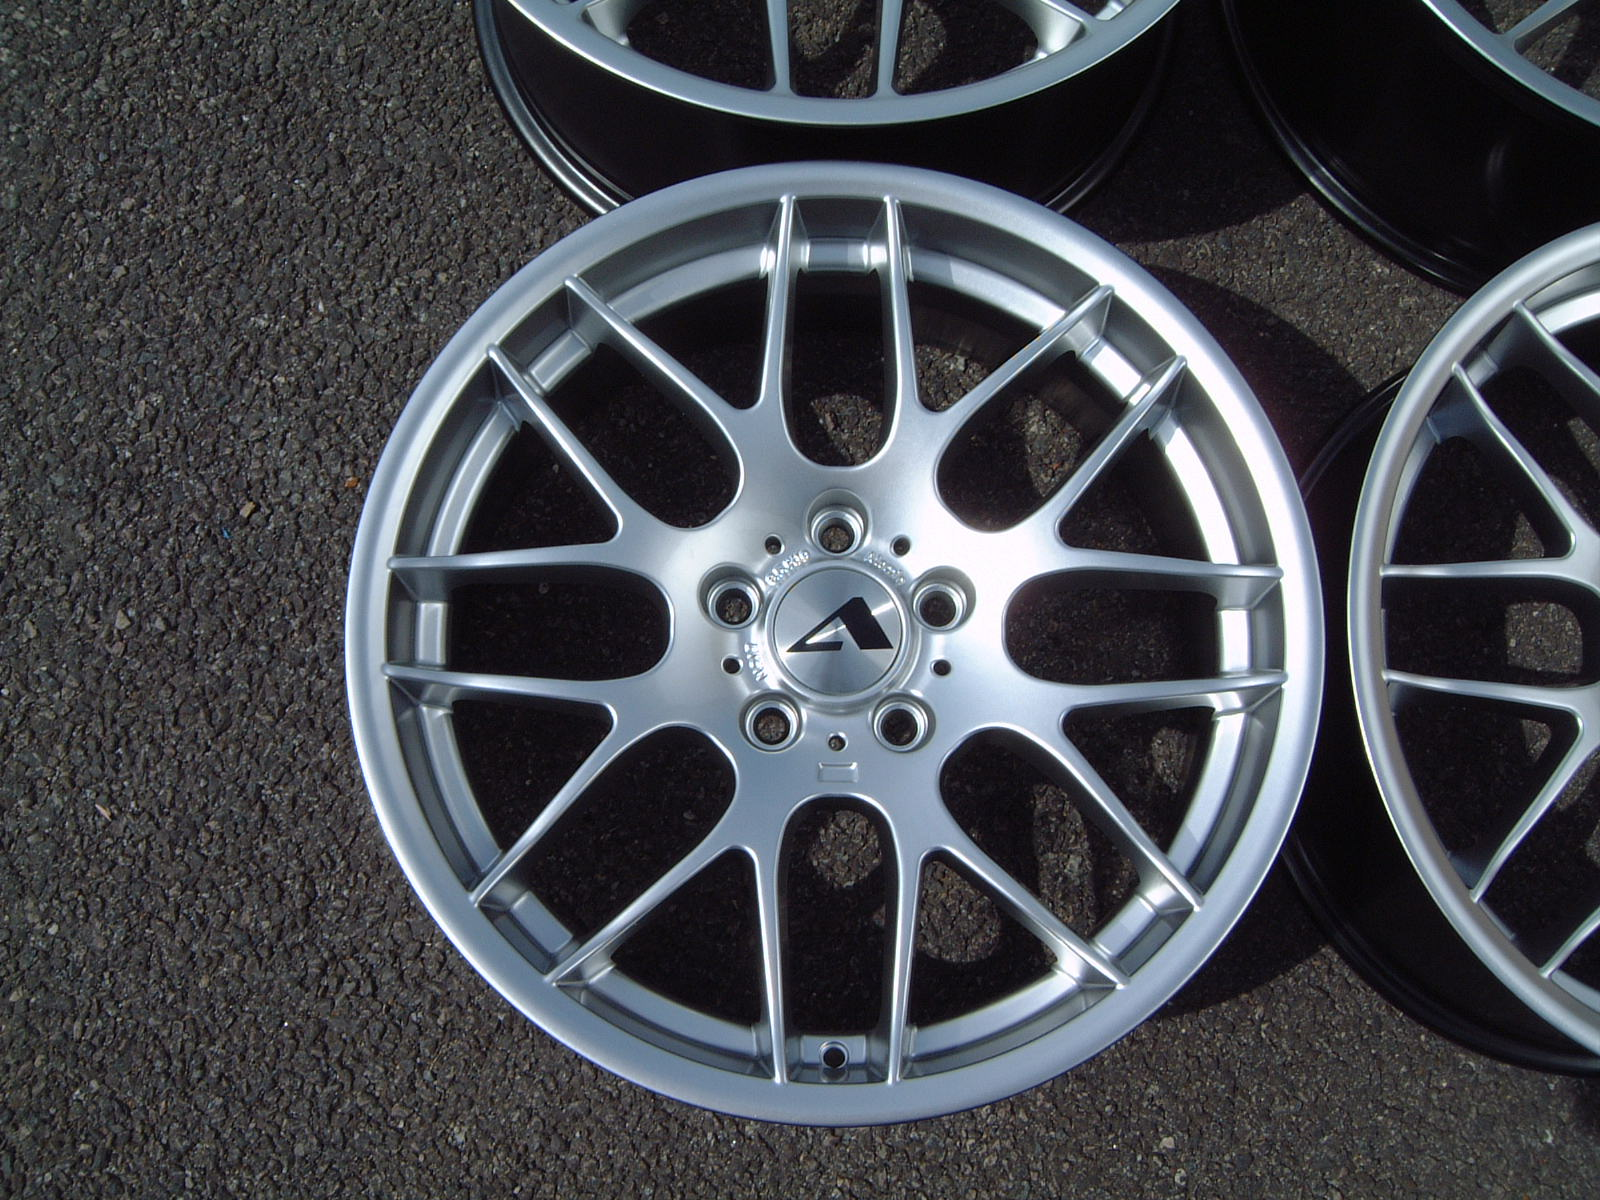 "NEW 19"" ATOMIC CSL ALLOY WHEELS IN HYPER SILVER, WITH DEEPER CONCAVE 9.5"" ET45 REAR**RARE FITMENT**"